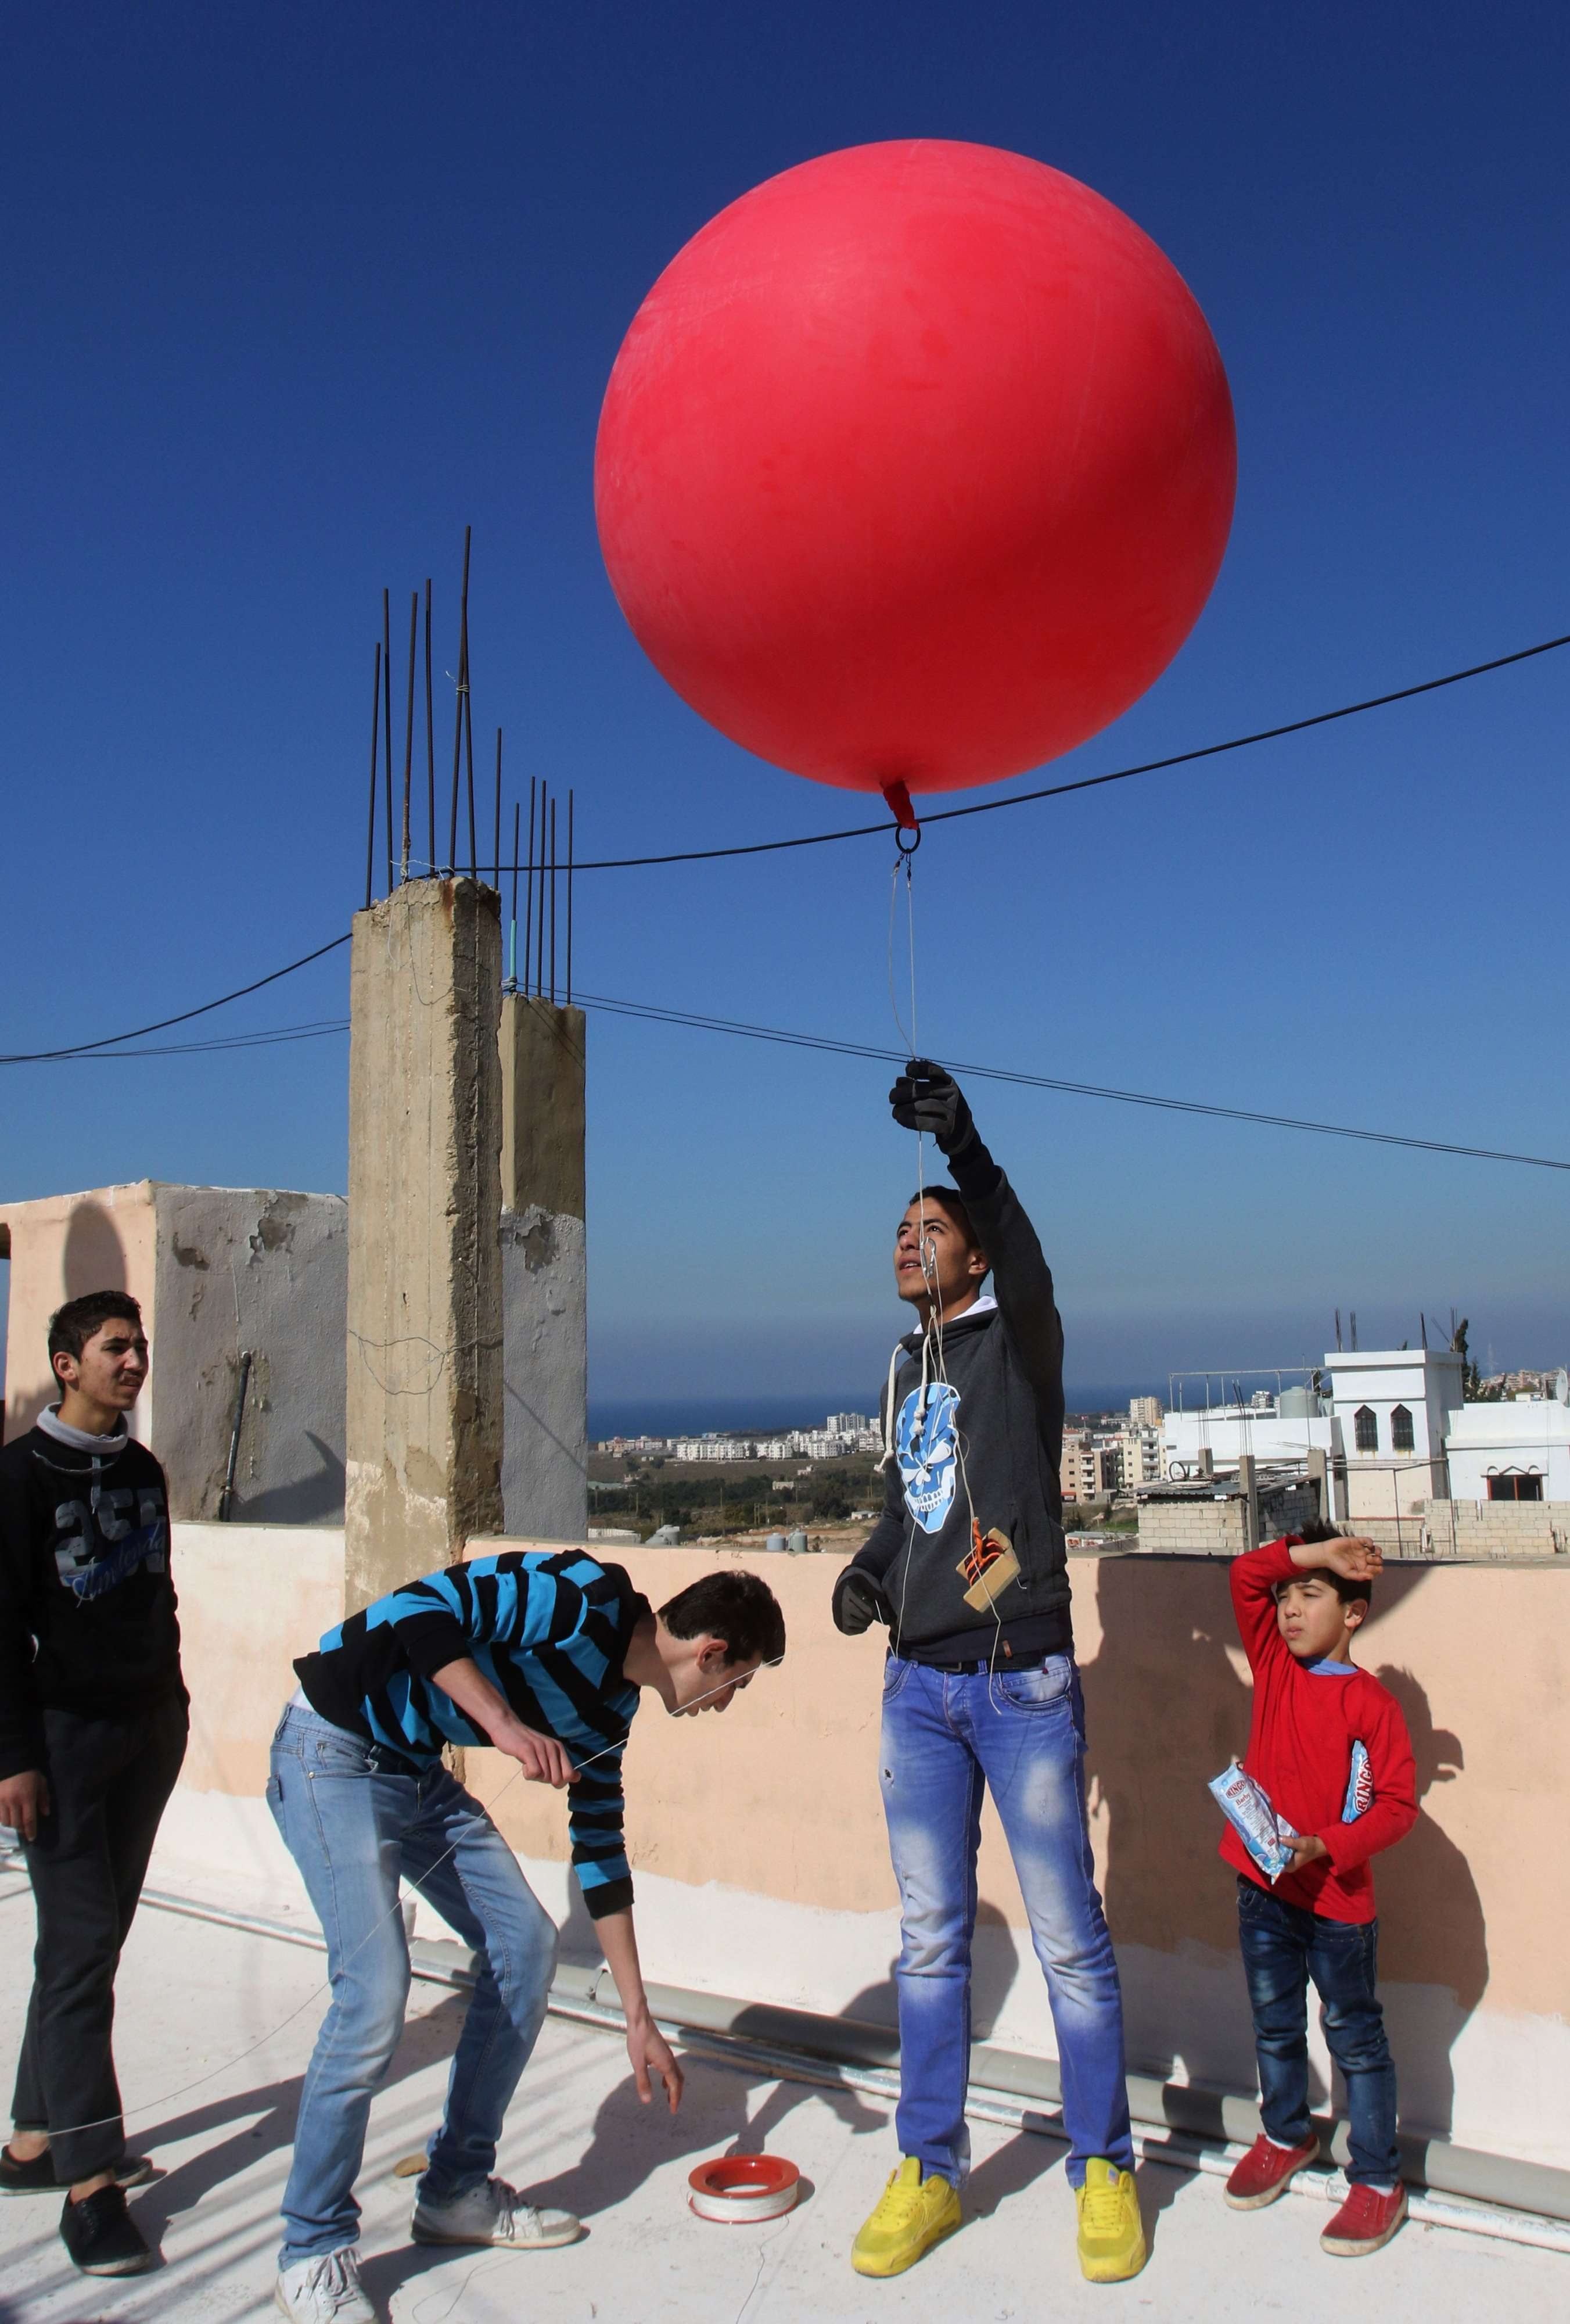 Keeping hope alive. Palestinian refugees fix a camera on a helium balloon before flying it over different parts of the Burj al-Shamali refugee camp in southern of Lebanon. (AFP)